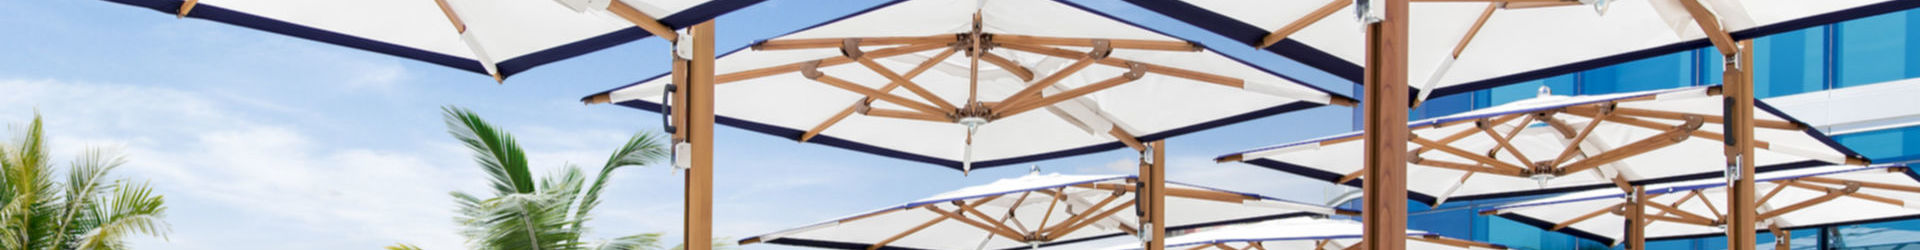 Cantilevers and Parasols